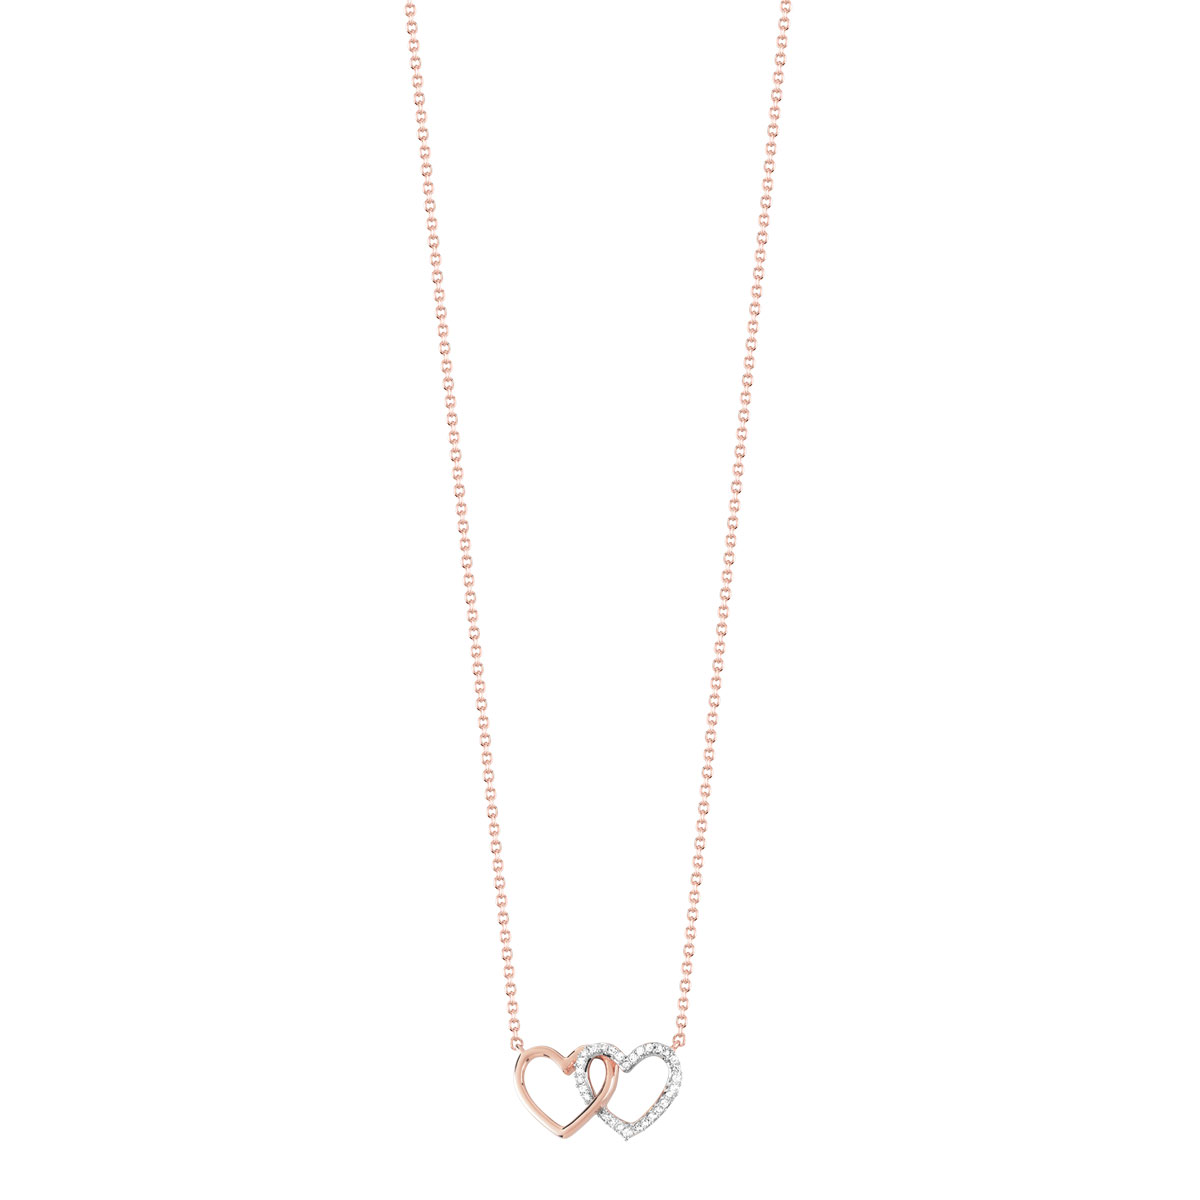 Collier or 375 rose diamant - vue 1